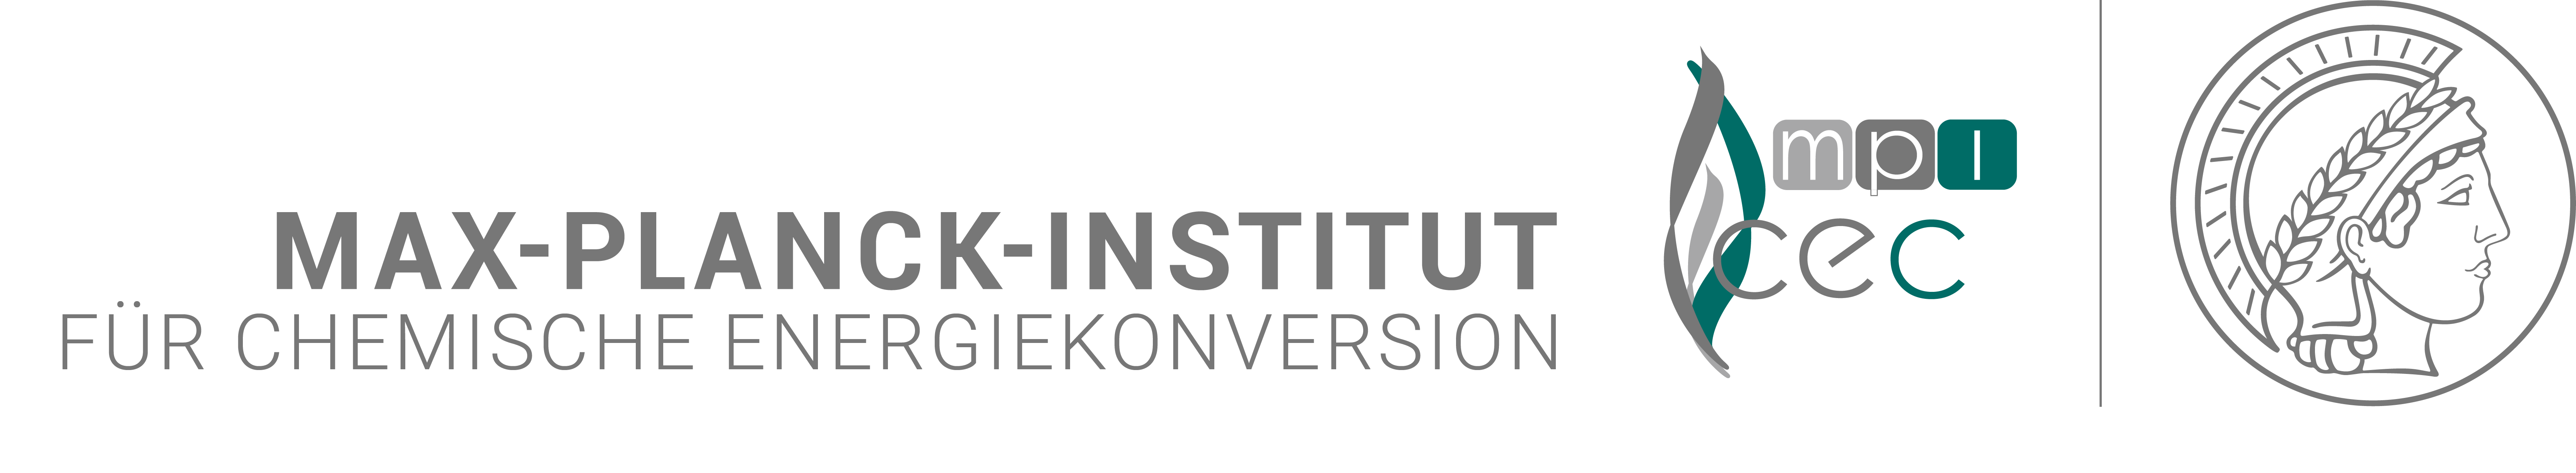 Max-Planck-Instituts für chemische Energiekonversion